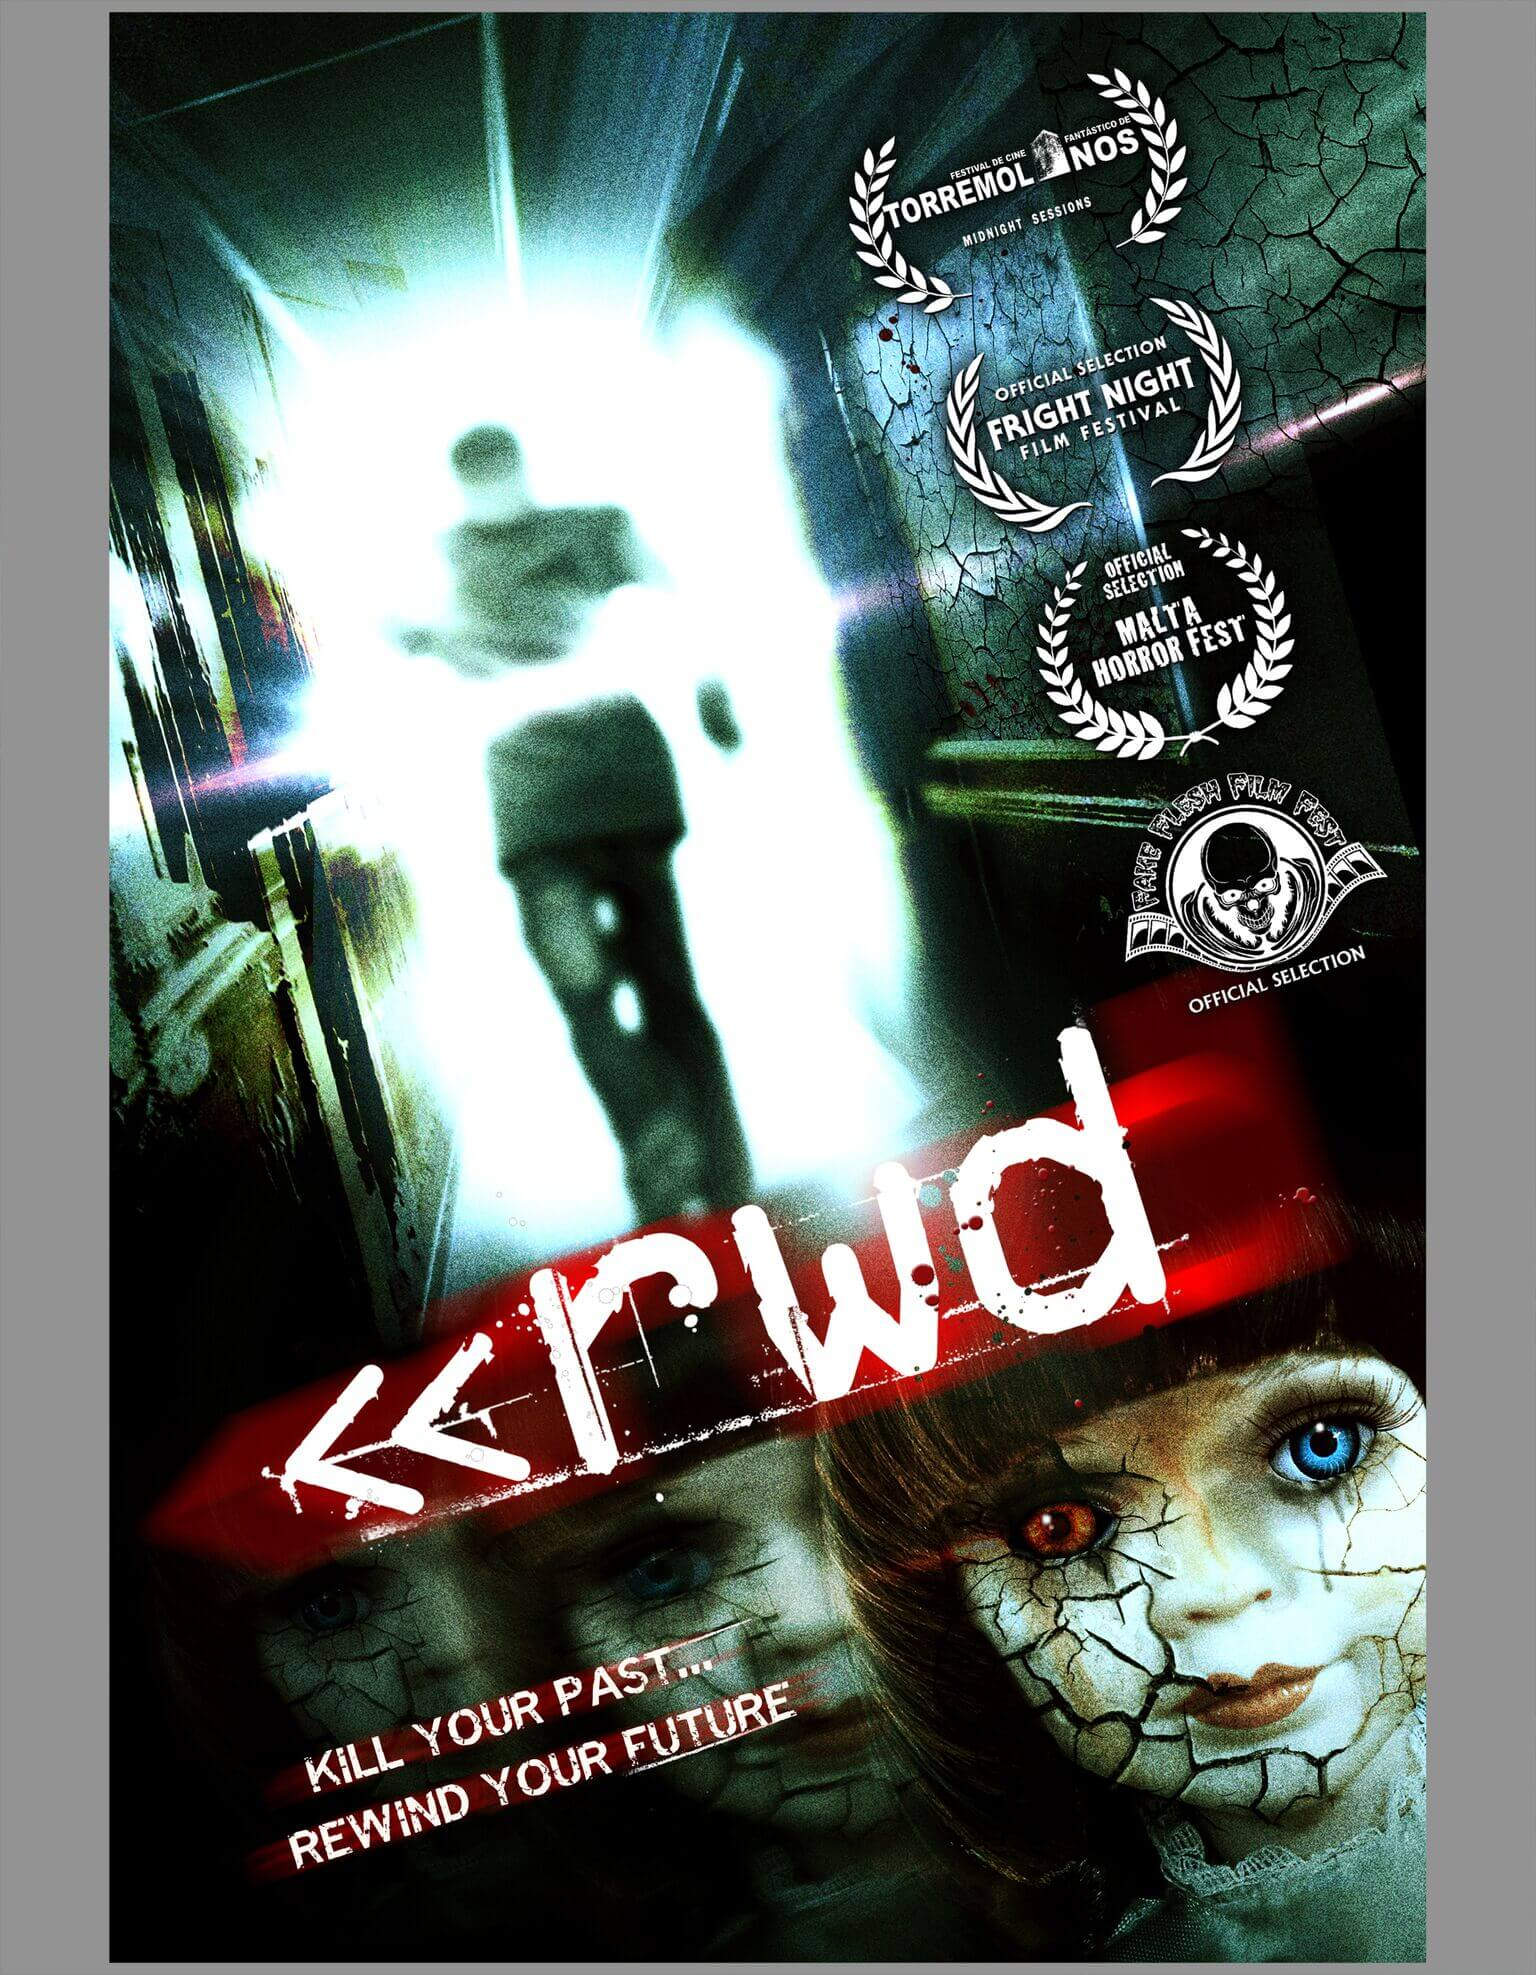 rdw2 1 - Blair Witch-Style Film RWD Searches For Ghosts On VOD